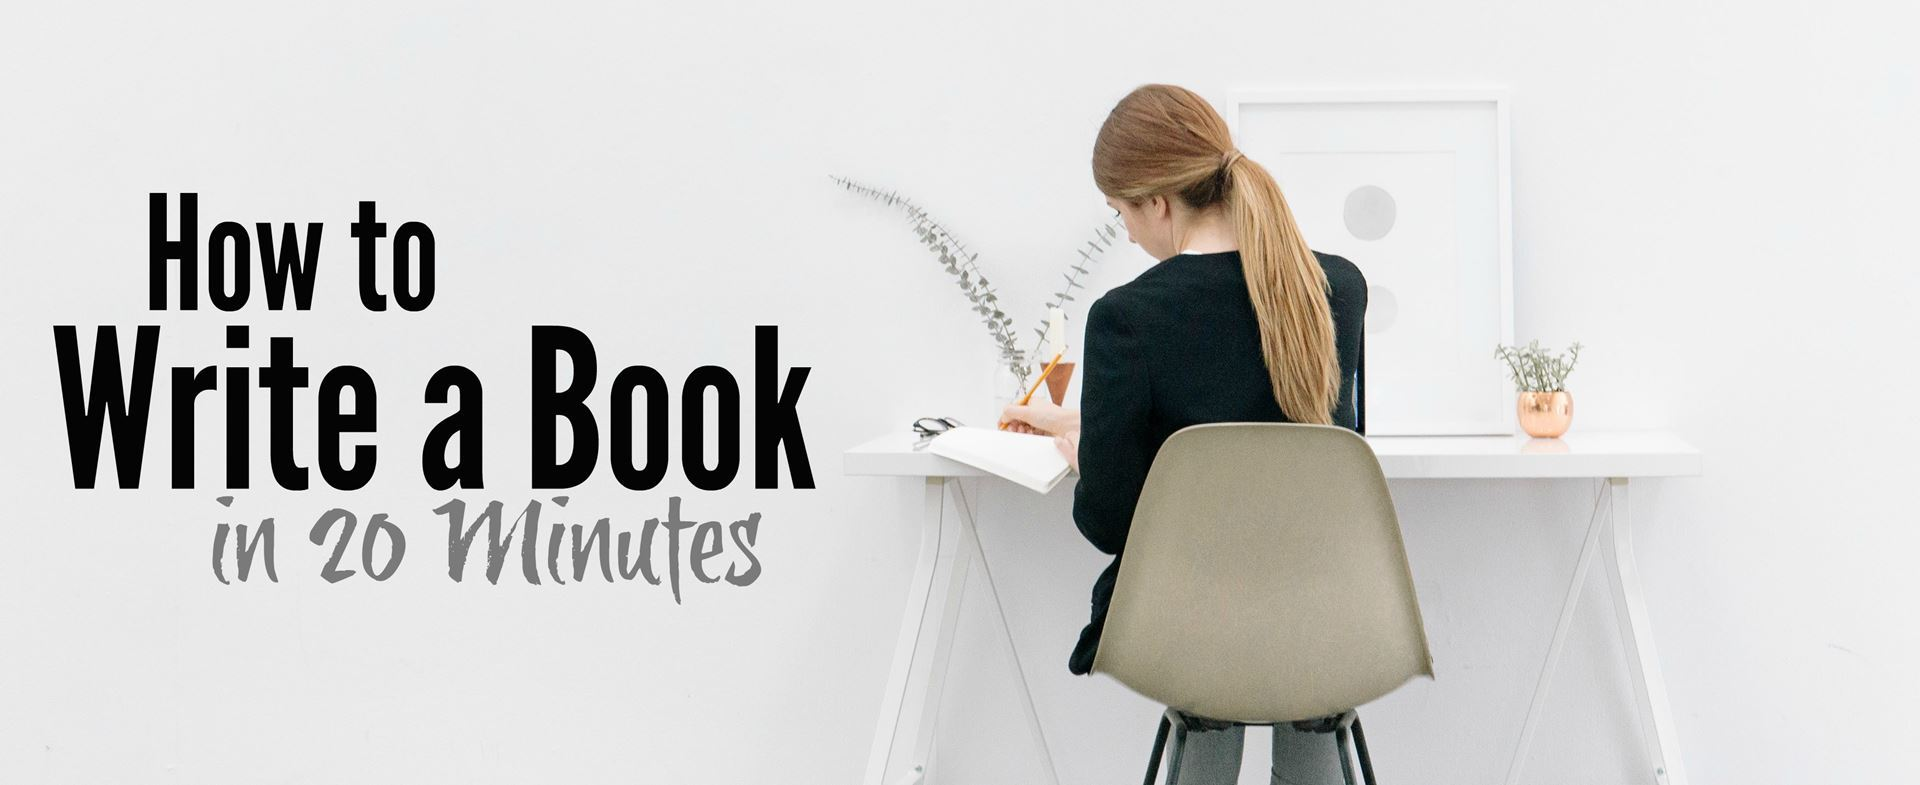 How to Write a Book in 20 Minutes Webinar on Thursday Dec 1 at 10am Pacific